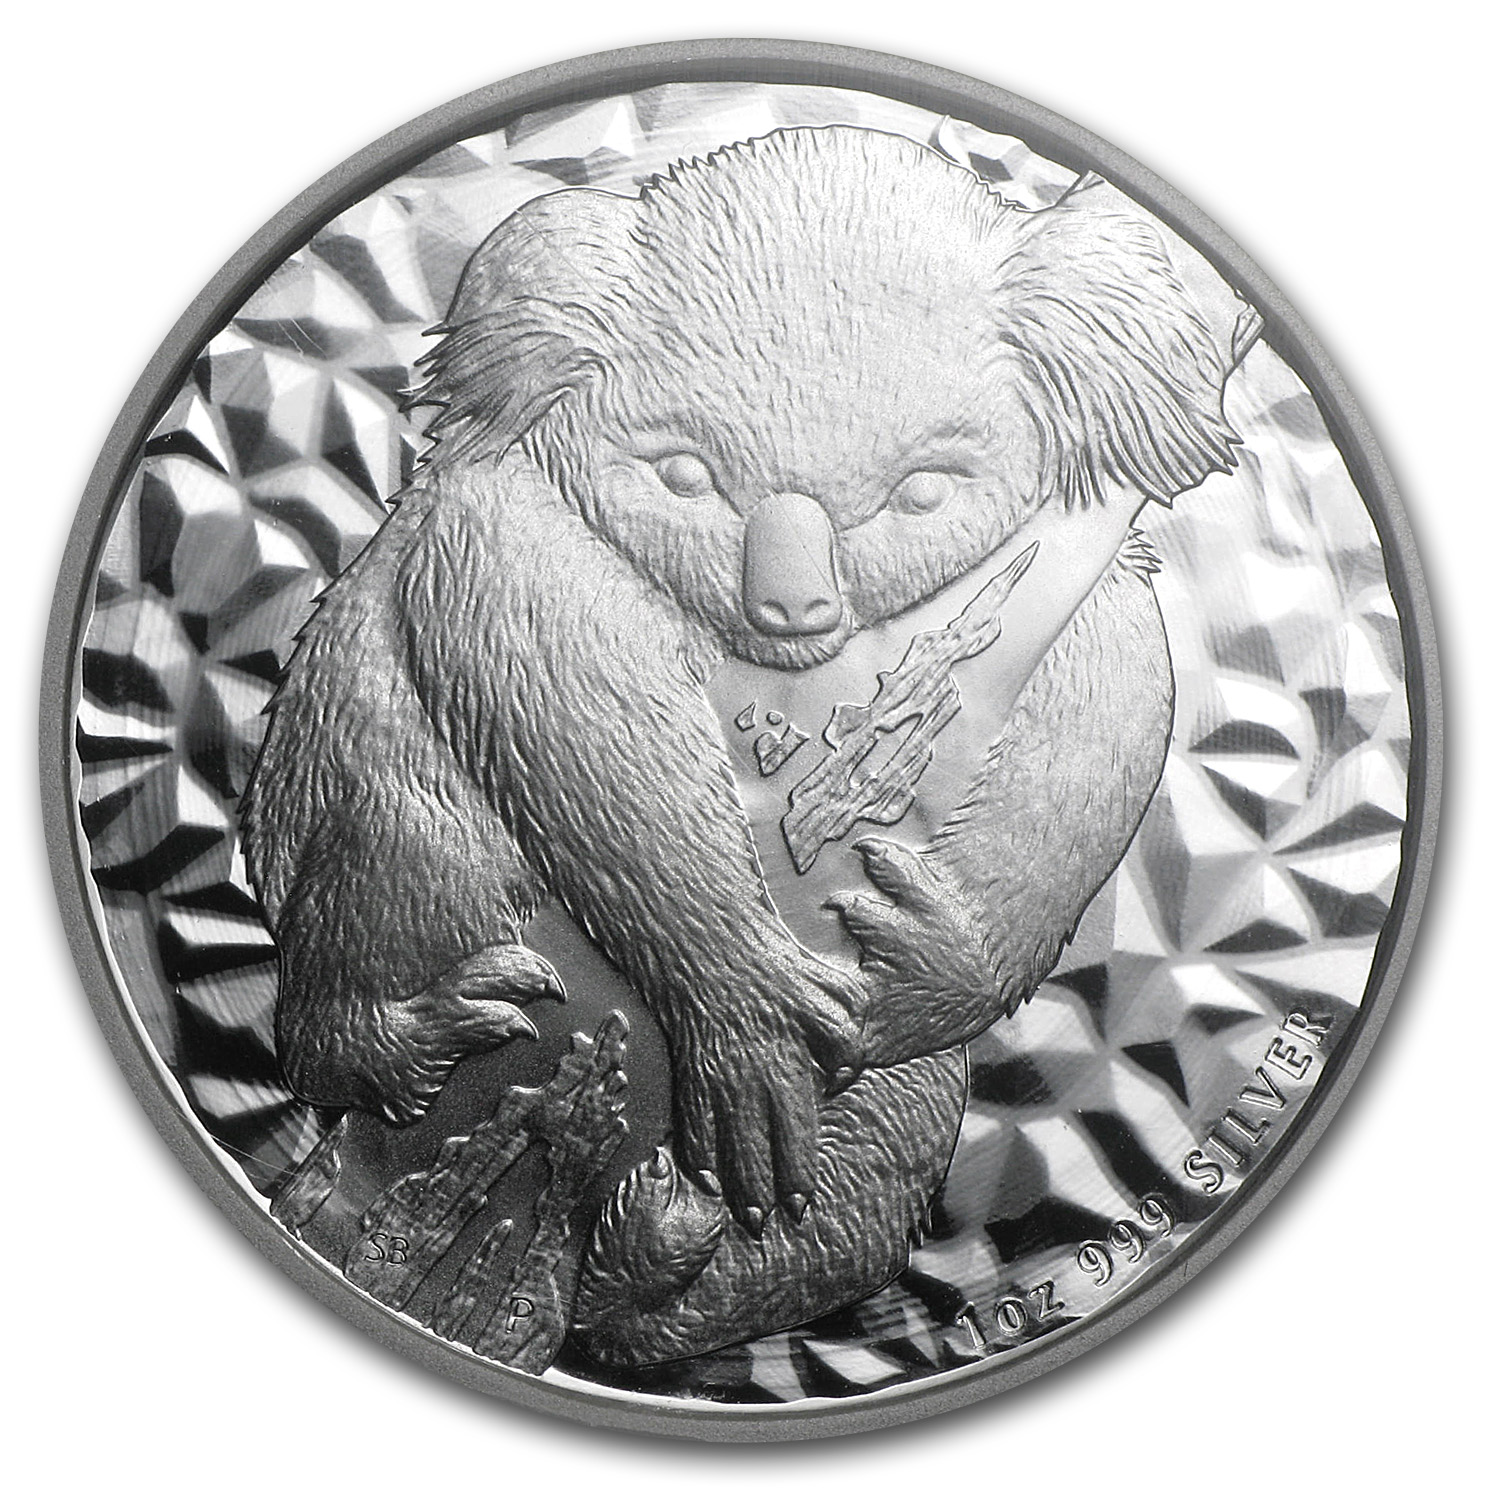 2007 1 oz Silver Australian Koala - MS-70 NGC First Year of Issue